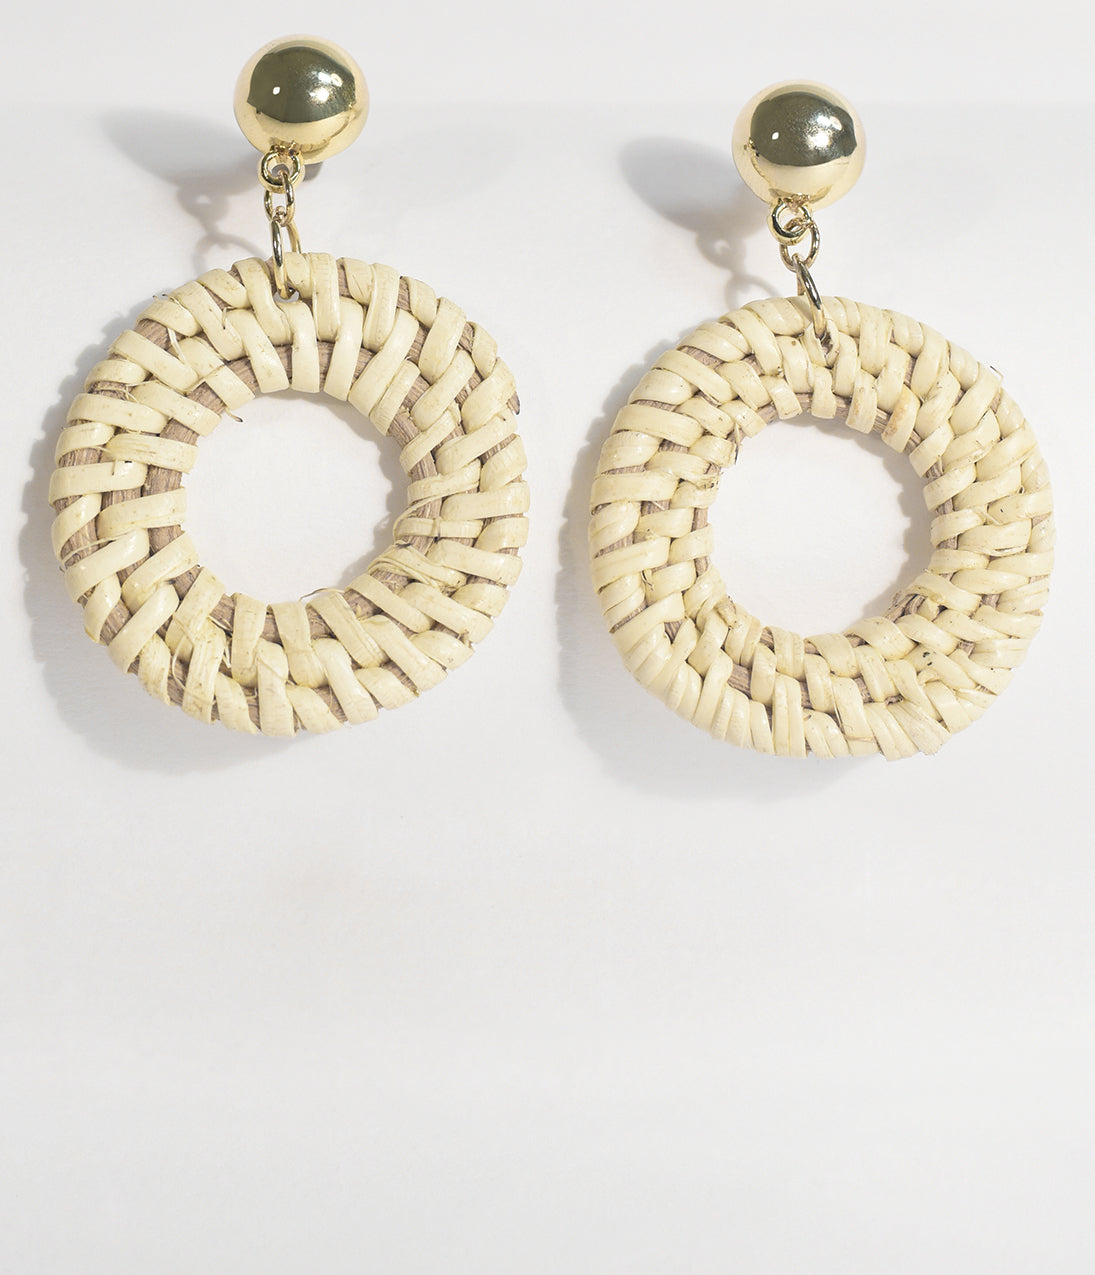 50s Jewelry: Earrings, Necklace, Brooch, Bracelet Ivory Woven Wicker Hoop Earrings $16.00 AT vintagedancer.com